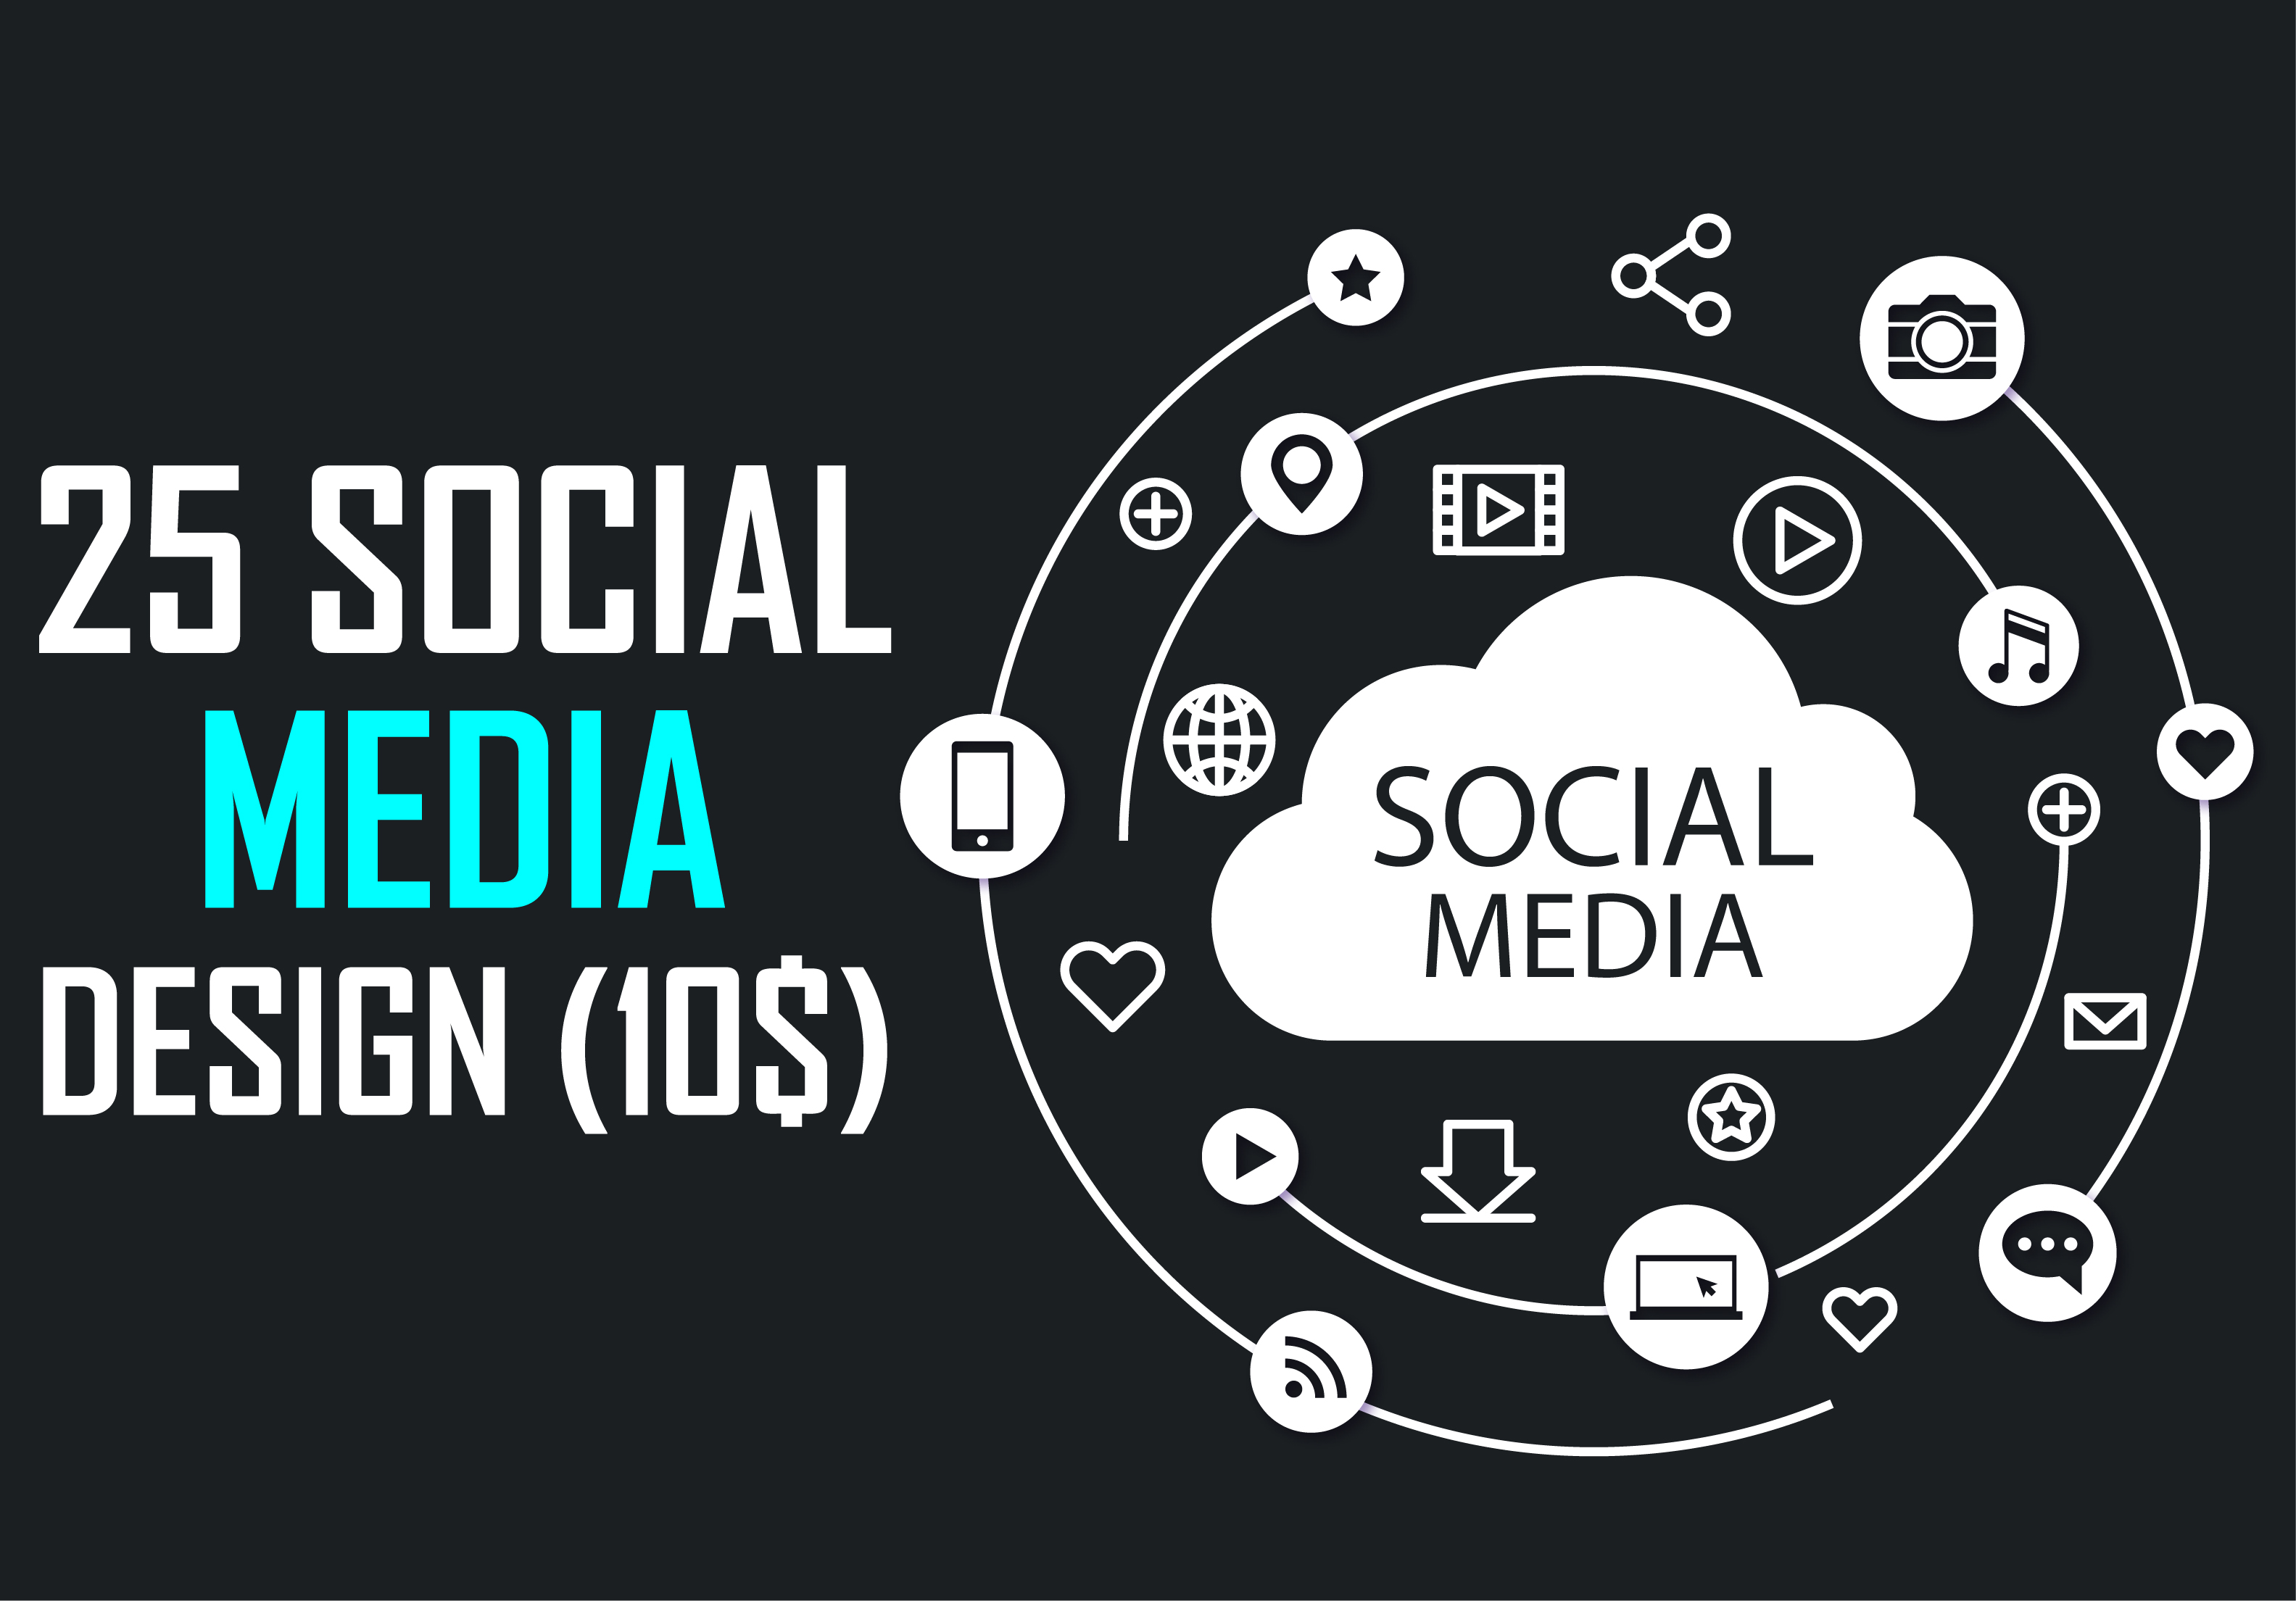 i will create 25 social media design